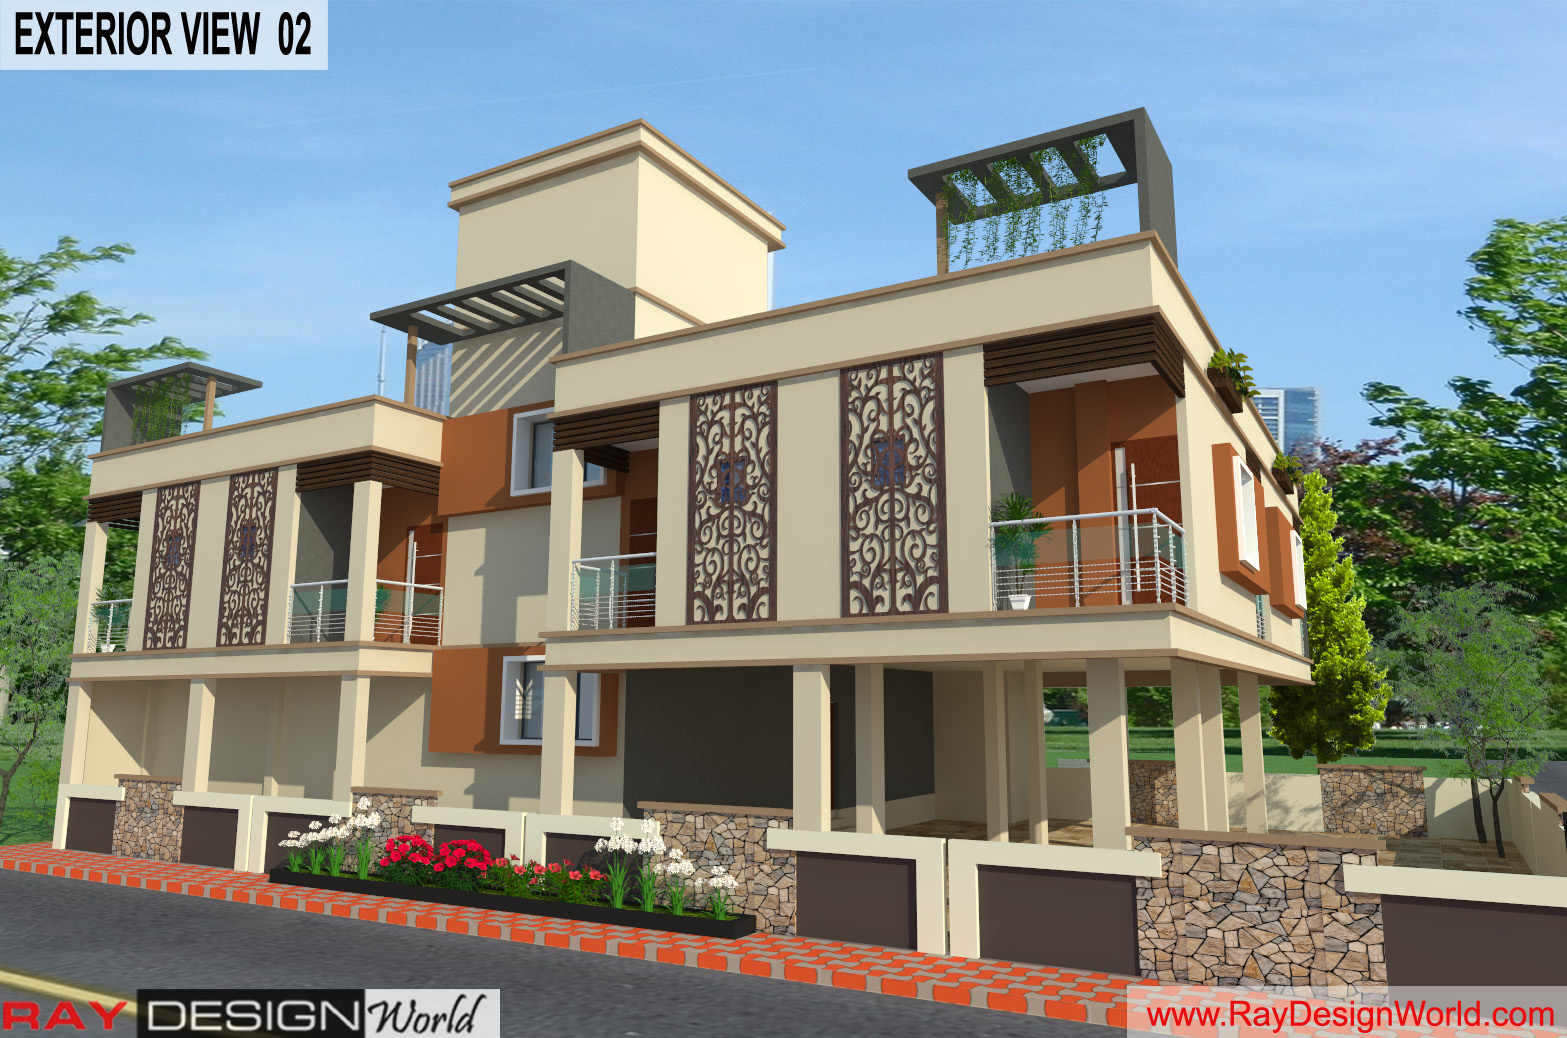 Guest House Exterior Design 02 - Lucknow UP - Mr. Narendra Kumar Tripathi